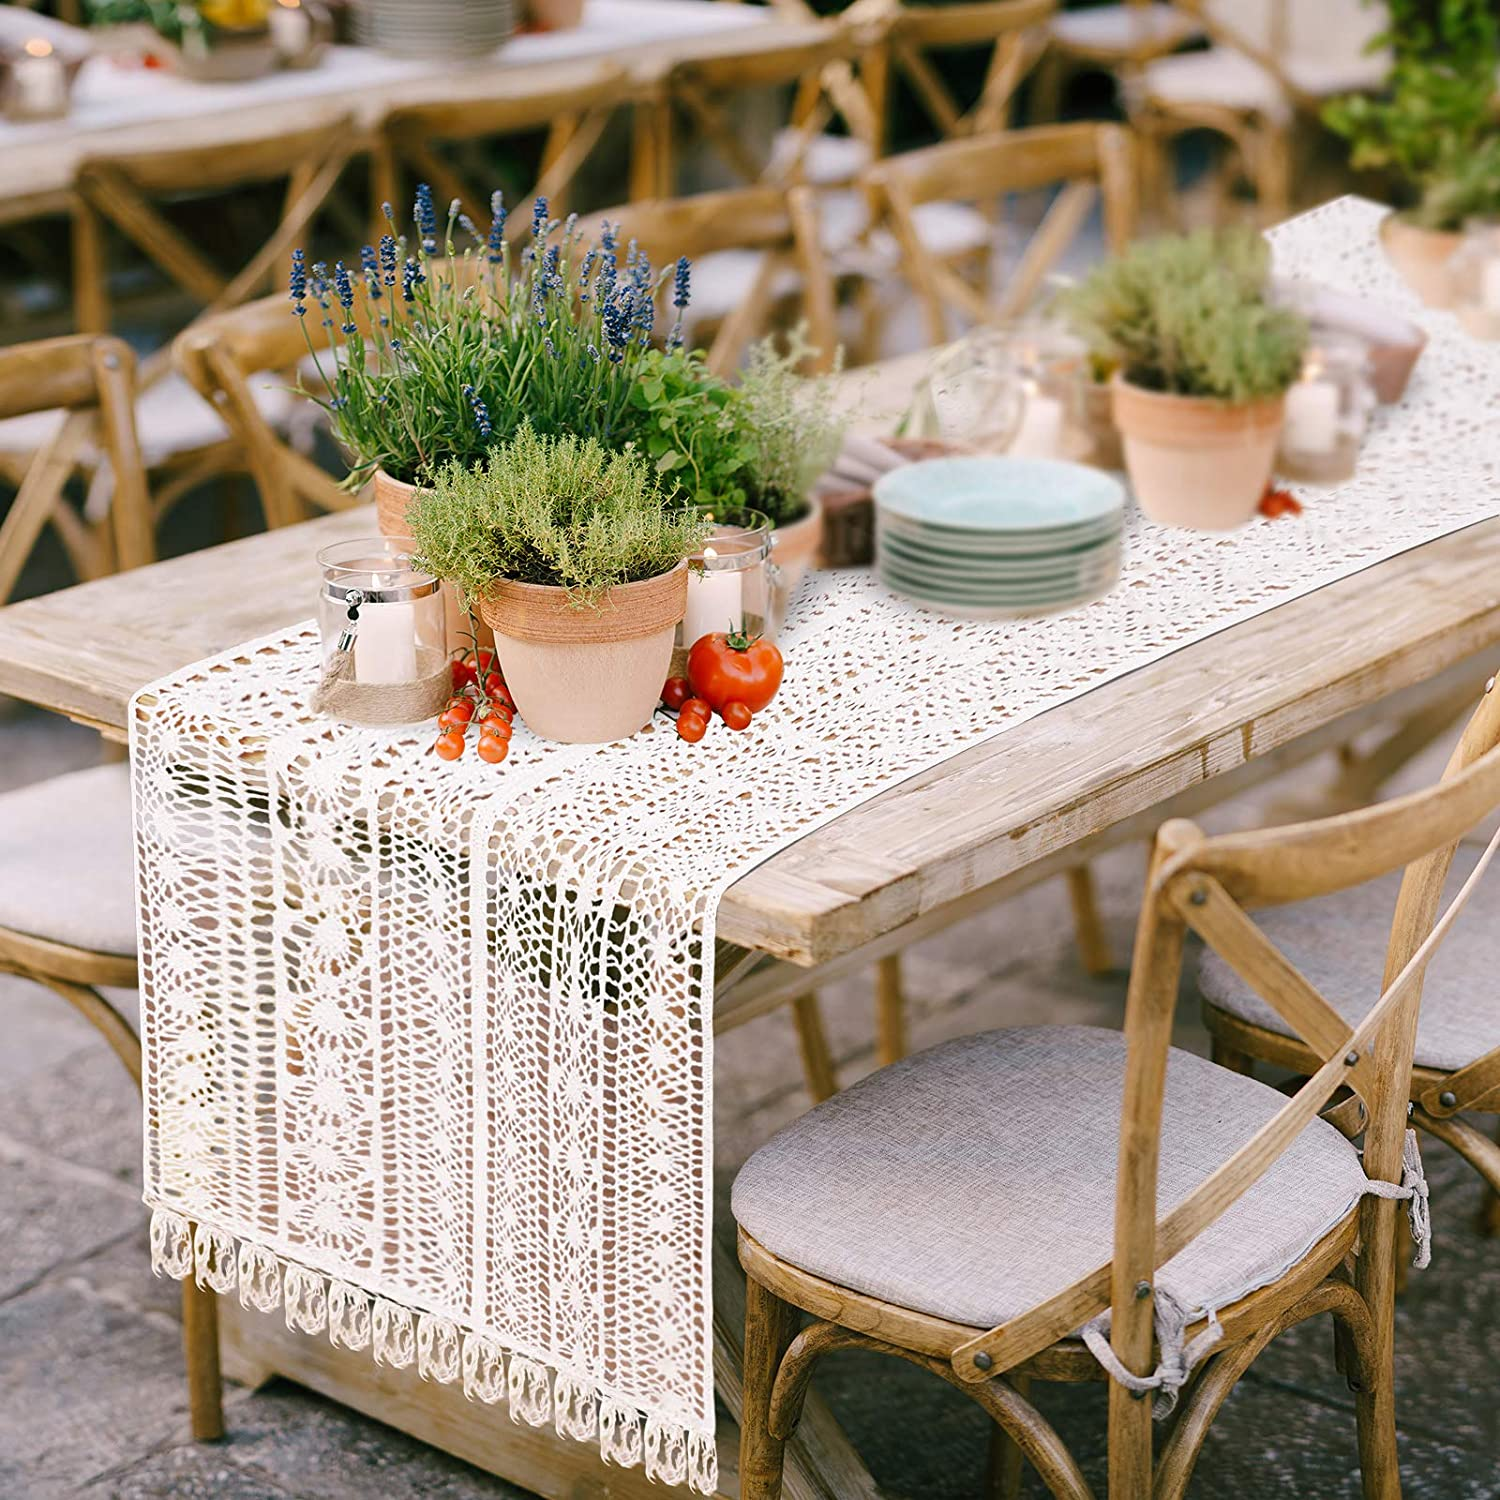 Ruisita 2 Pieces Cotton Crochet Lace Table Runner Wedding Table Runner Table Runner with Tassels Woven Lace Dining Table Runner for Wedding Bridal Party Home Decor 15 x 72 Inches, Ivory